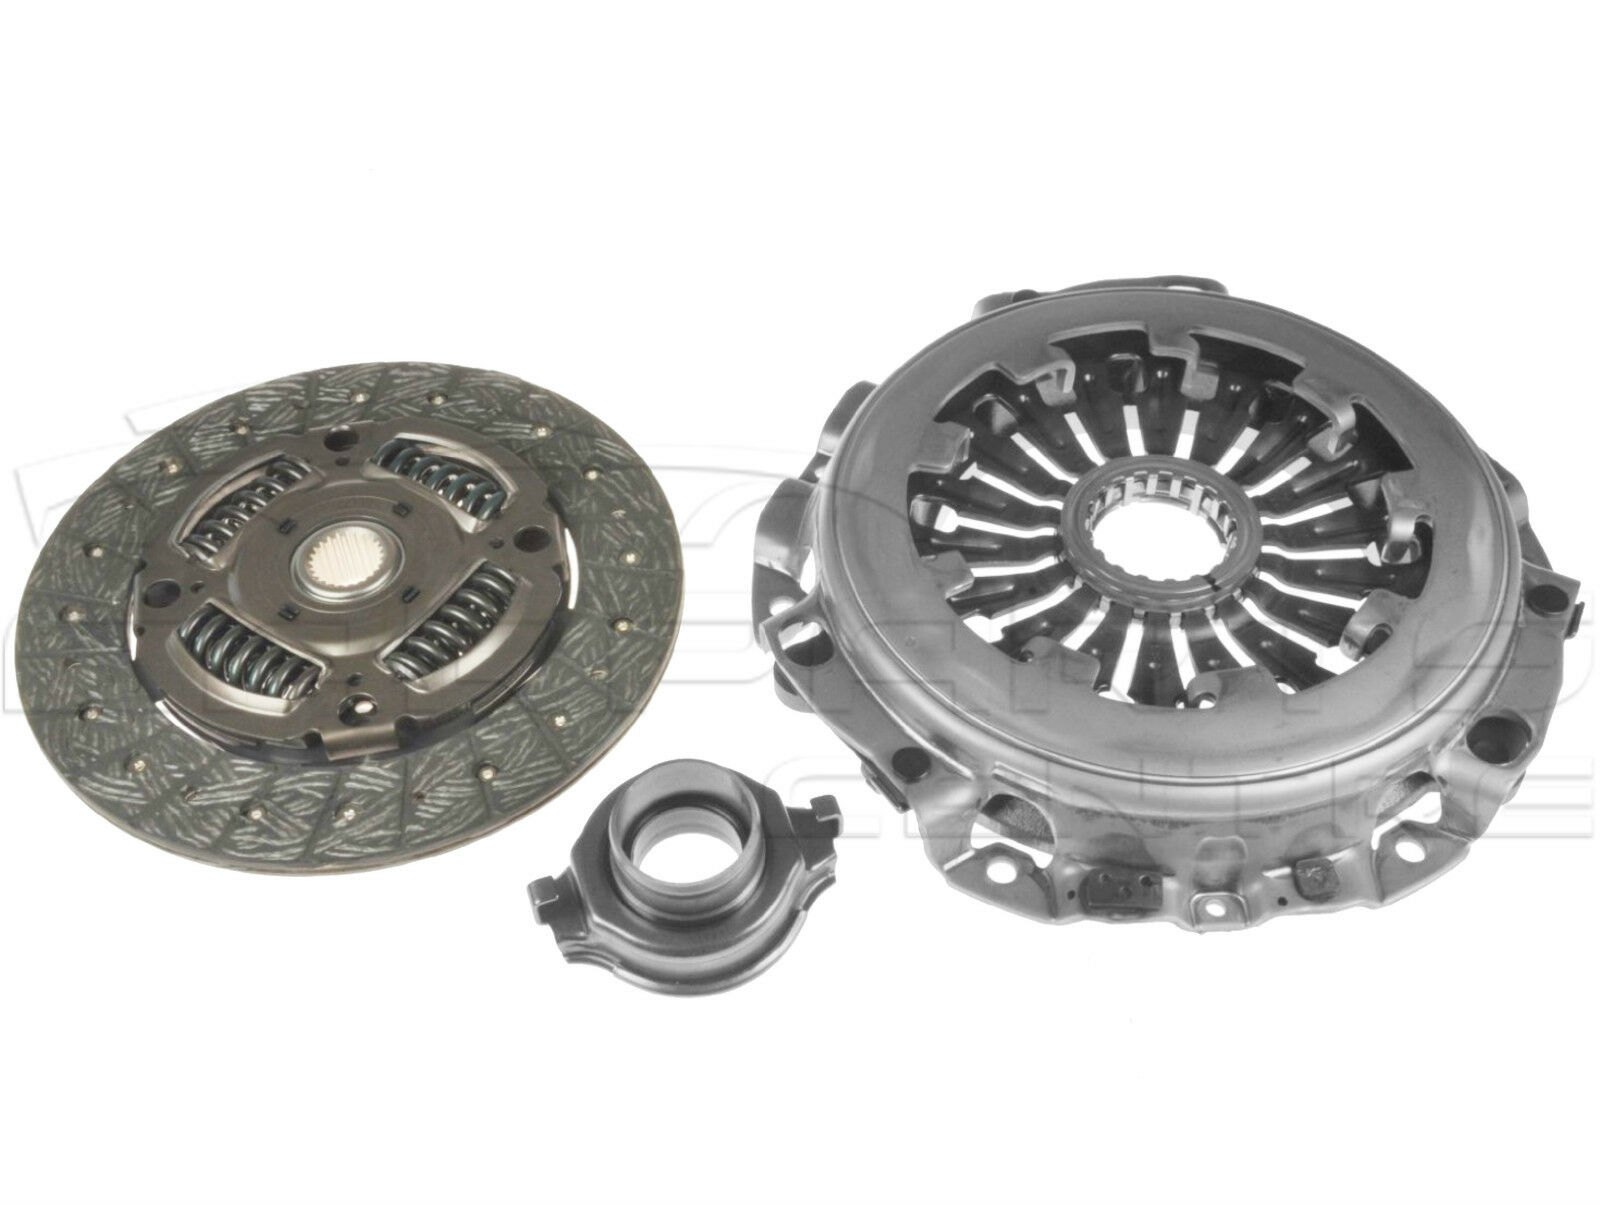 Subaru Legacy: Checking the clutch function